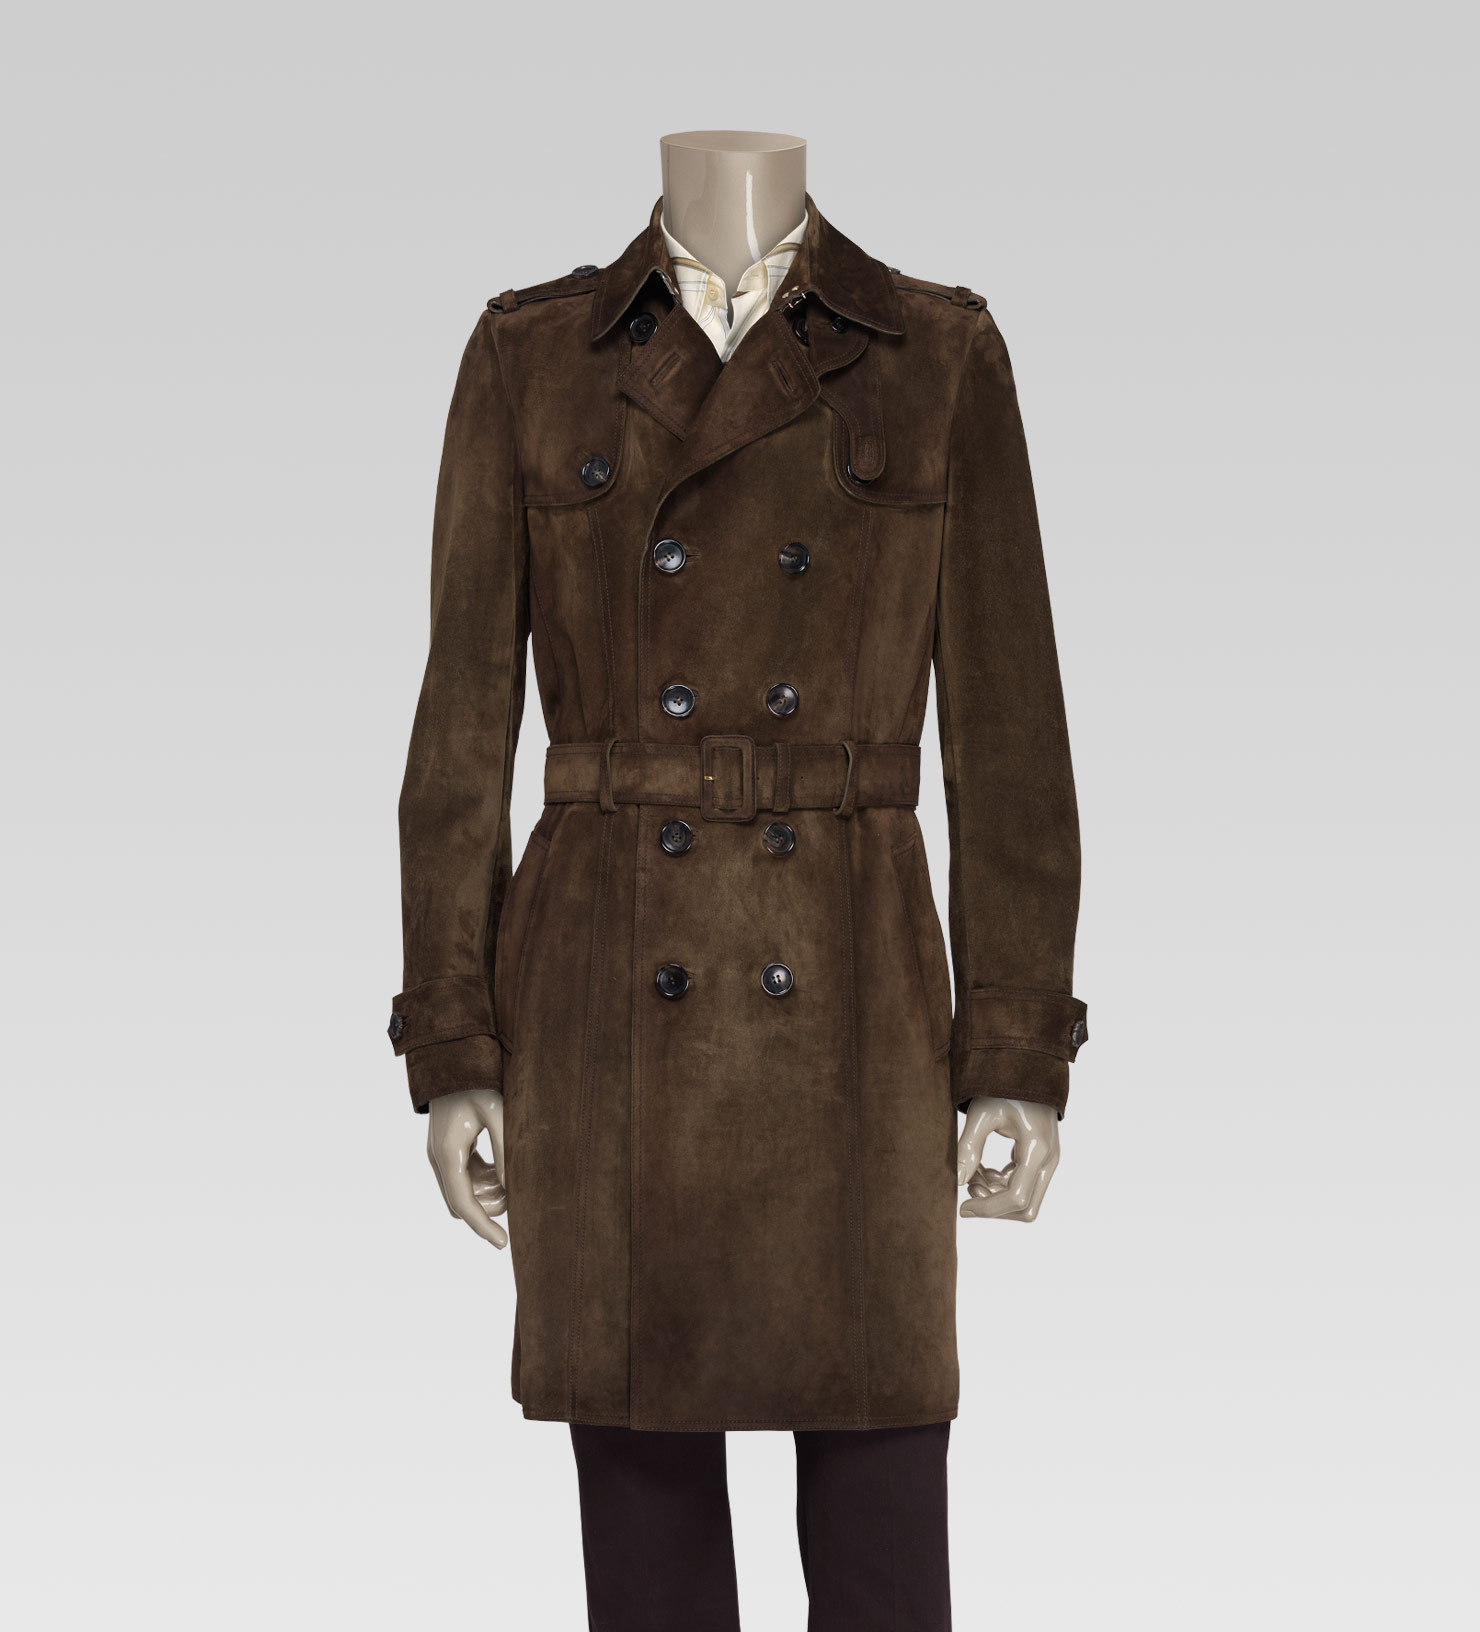 Gucci Mens Collection Trench Coat In Brown For Men Lyst